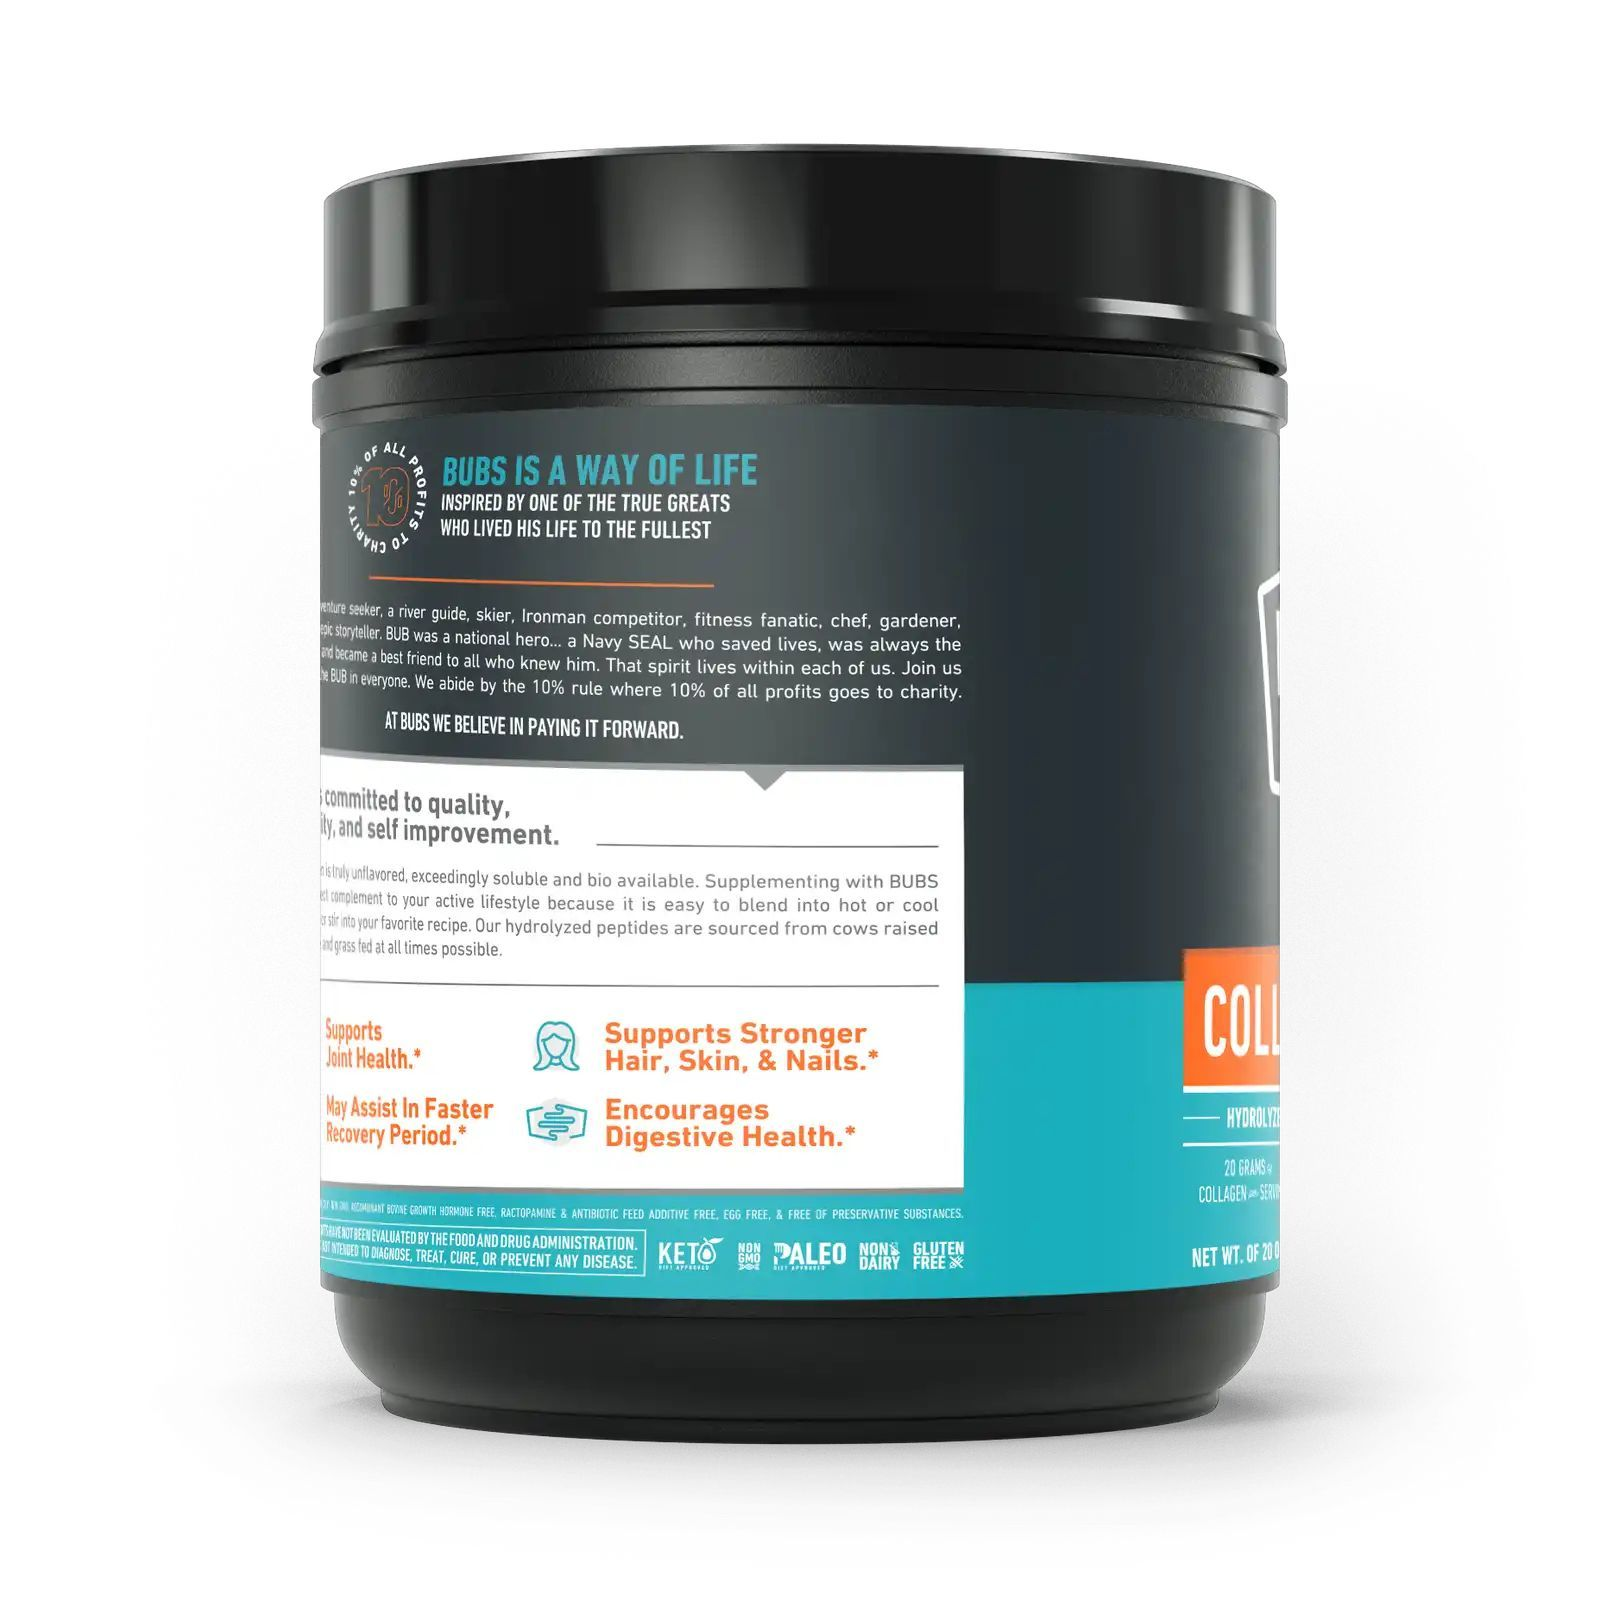 Коллагеновый протеин, Bubs Naturals, Collagen Protein, NSF certificate (567g)-3